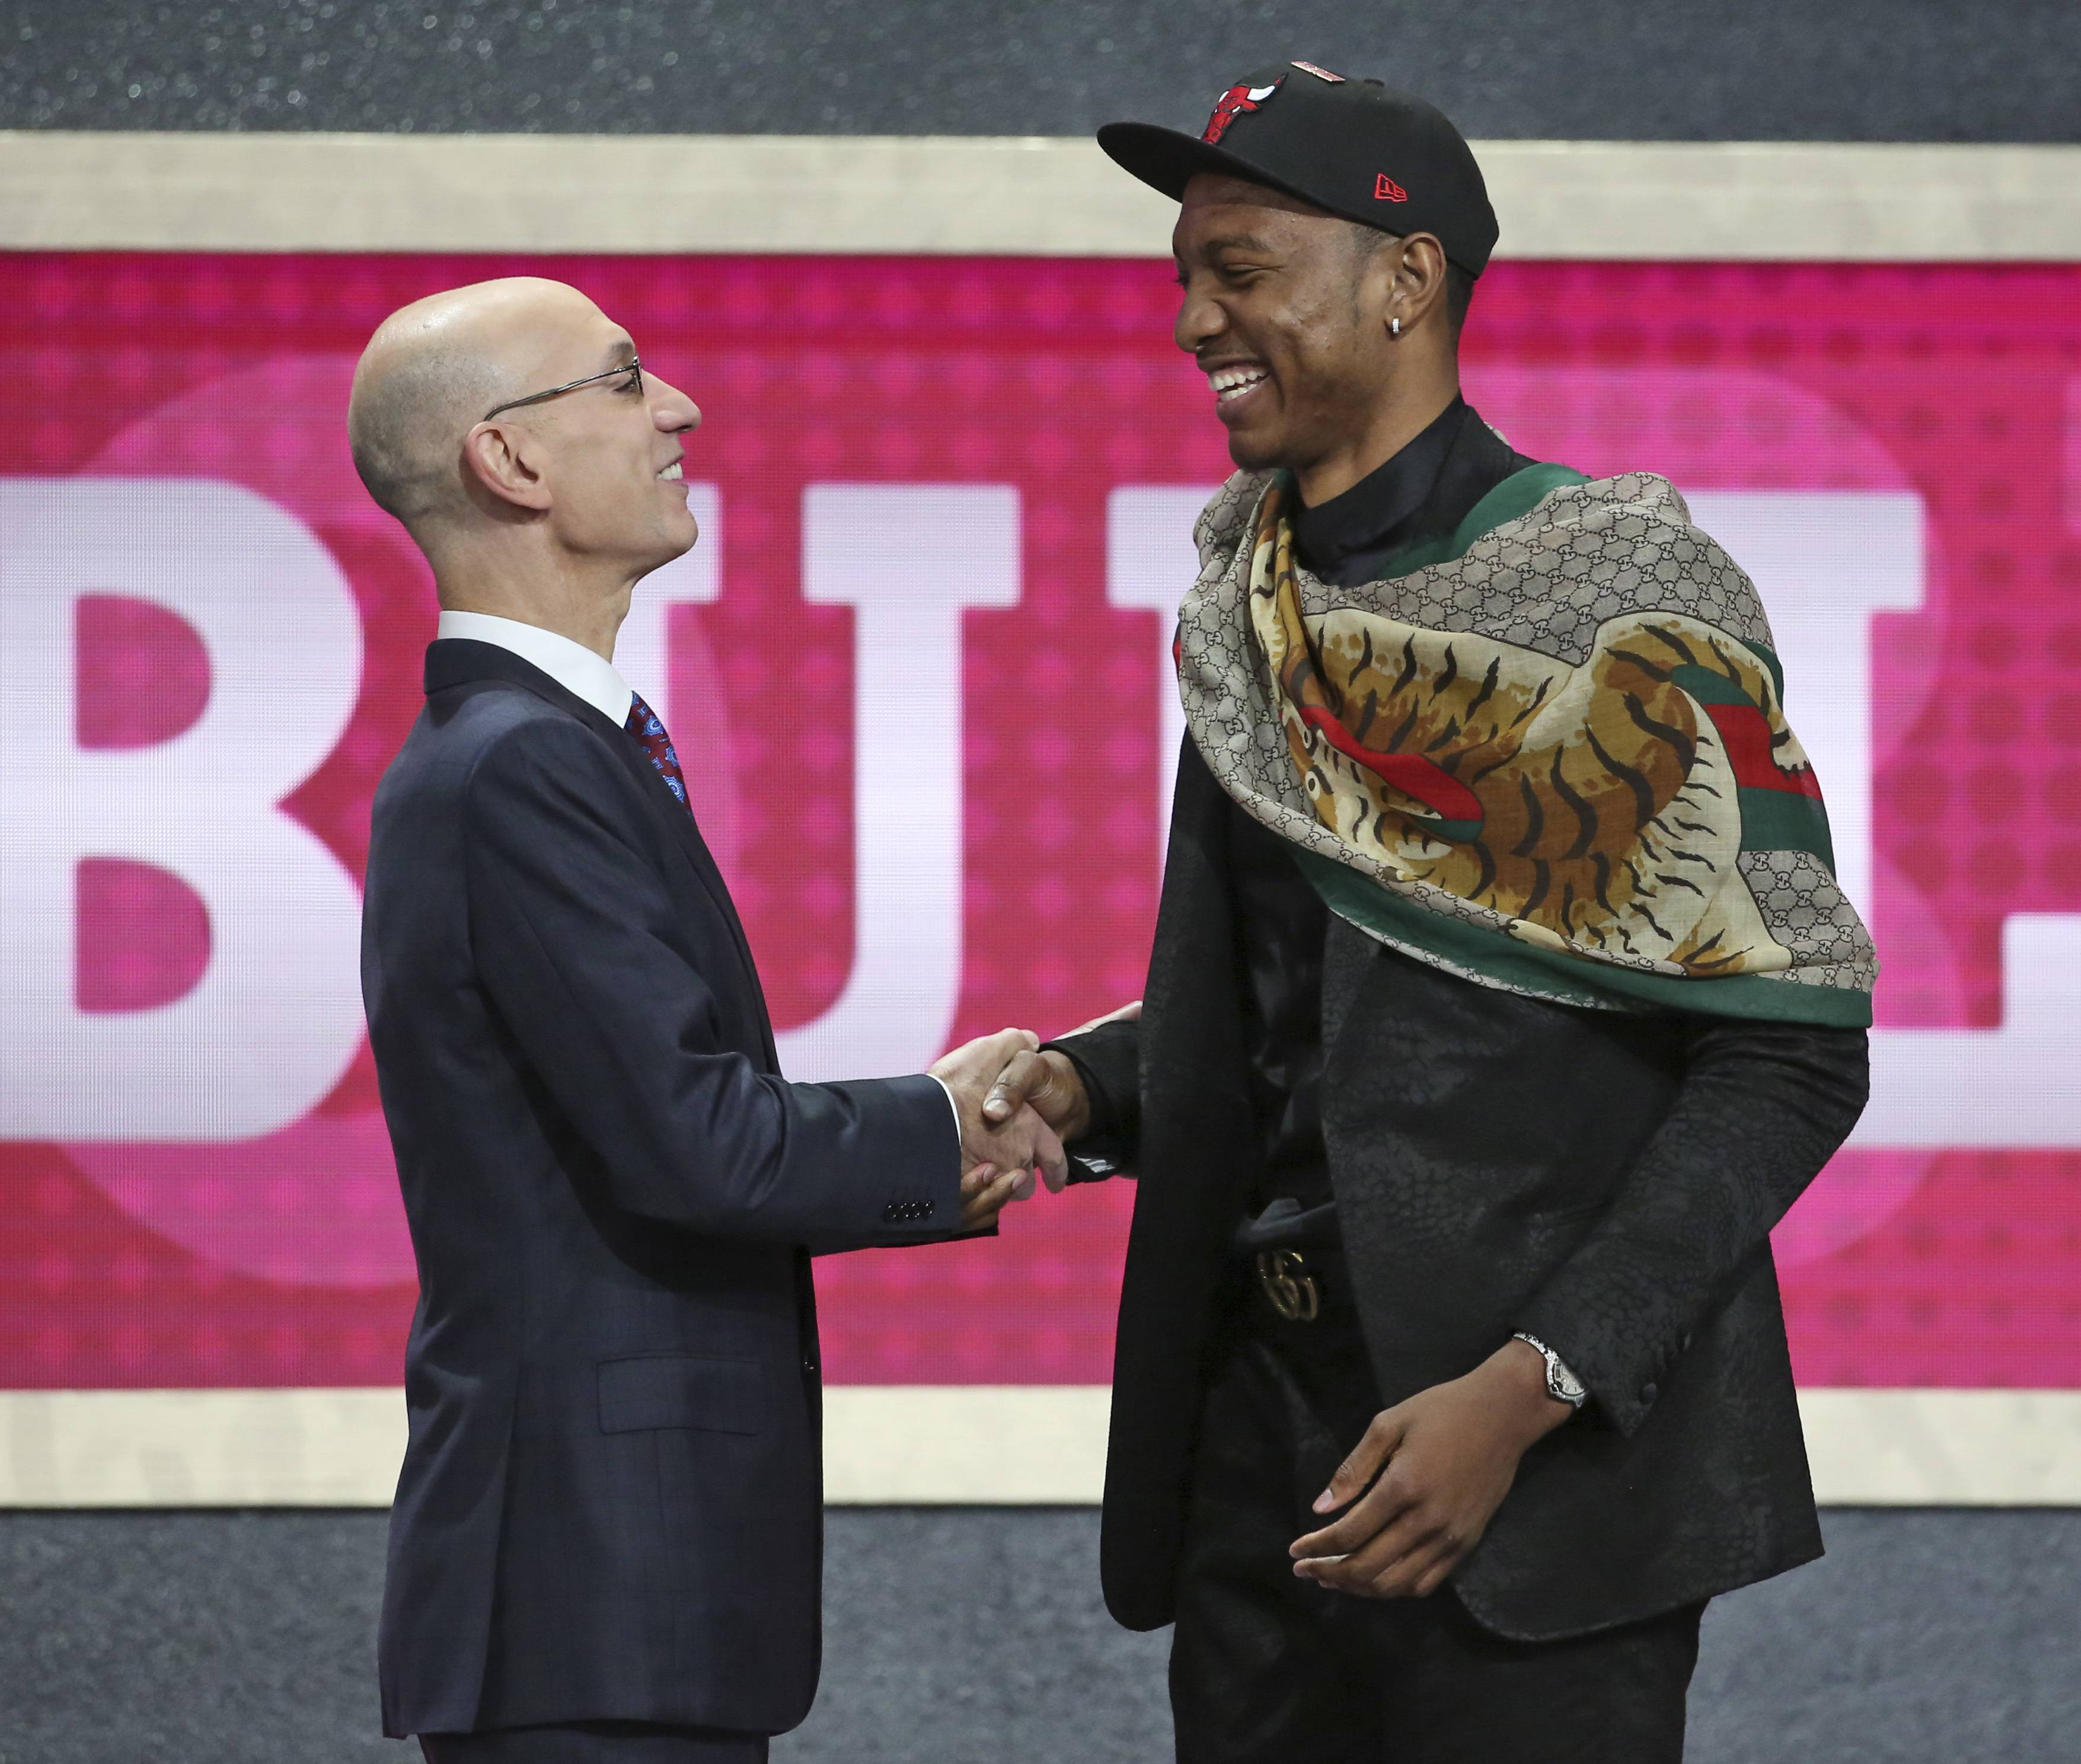 Chicago Bulls go the safe, predictable route with Carter and Hutchison